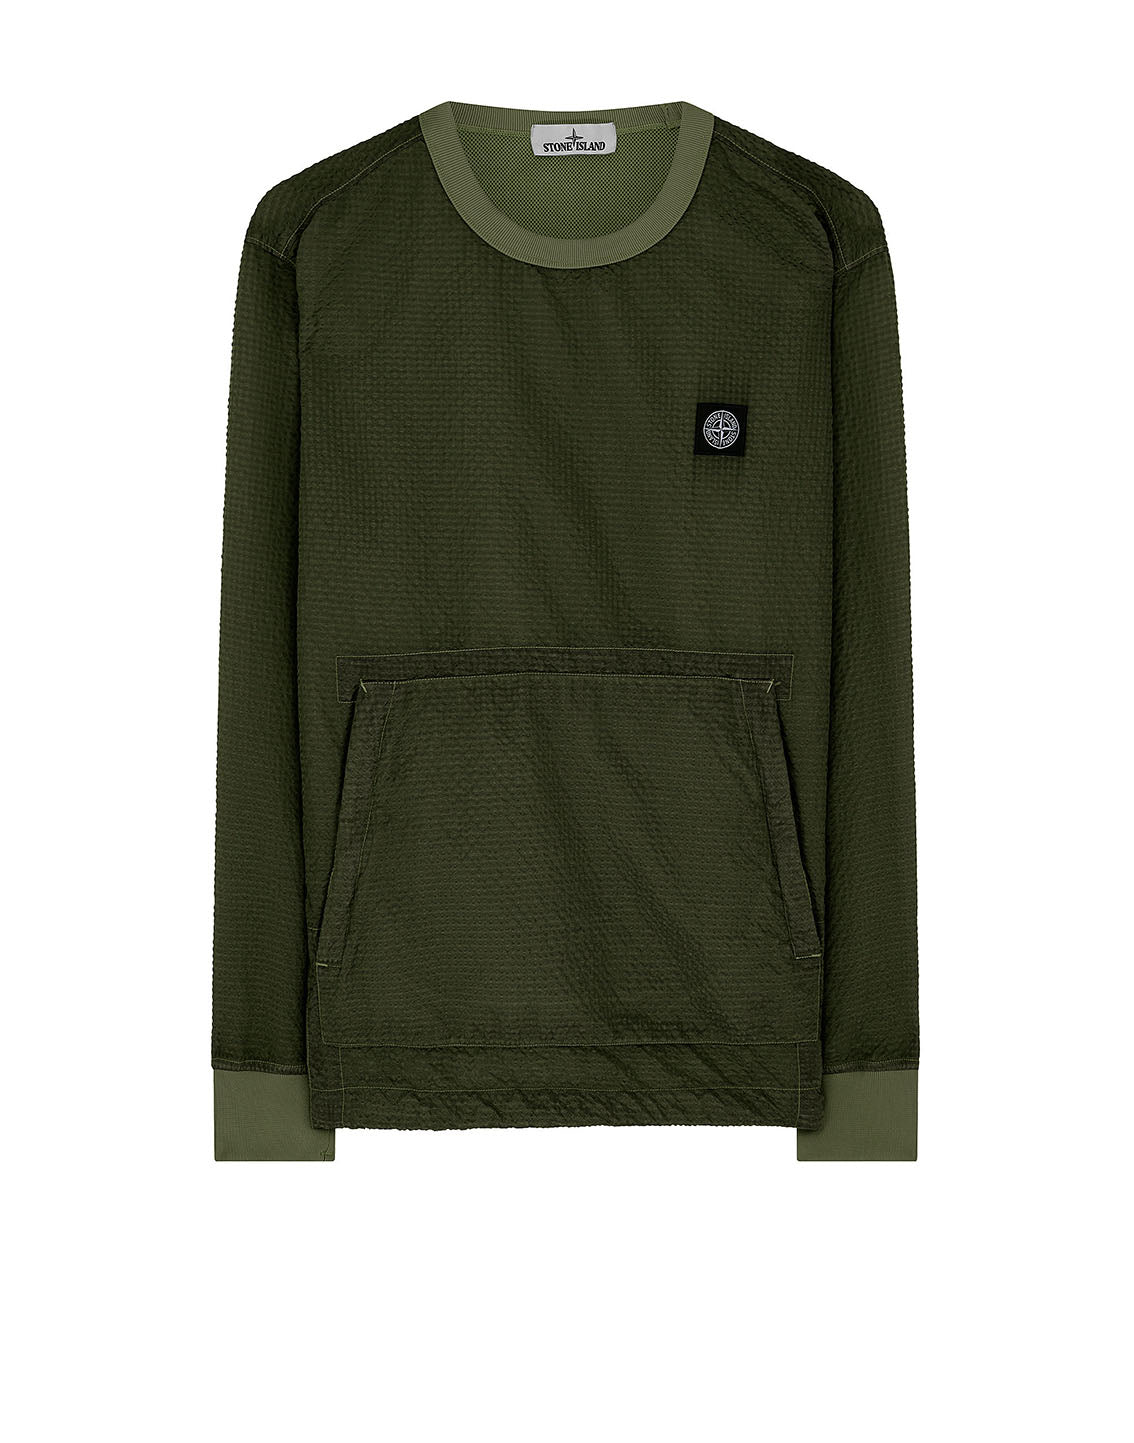 62434 POLY-COLOUR FRAME-TC: Crewneck sweatshirt in Dark Forest